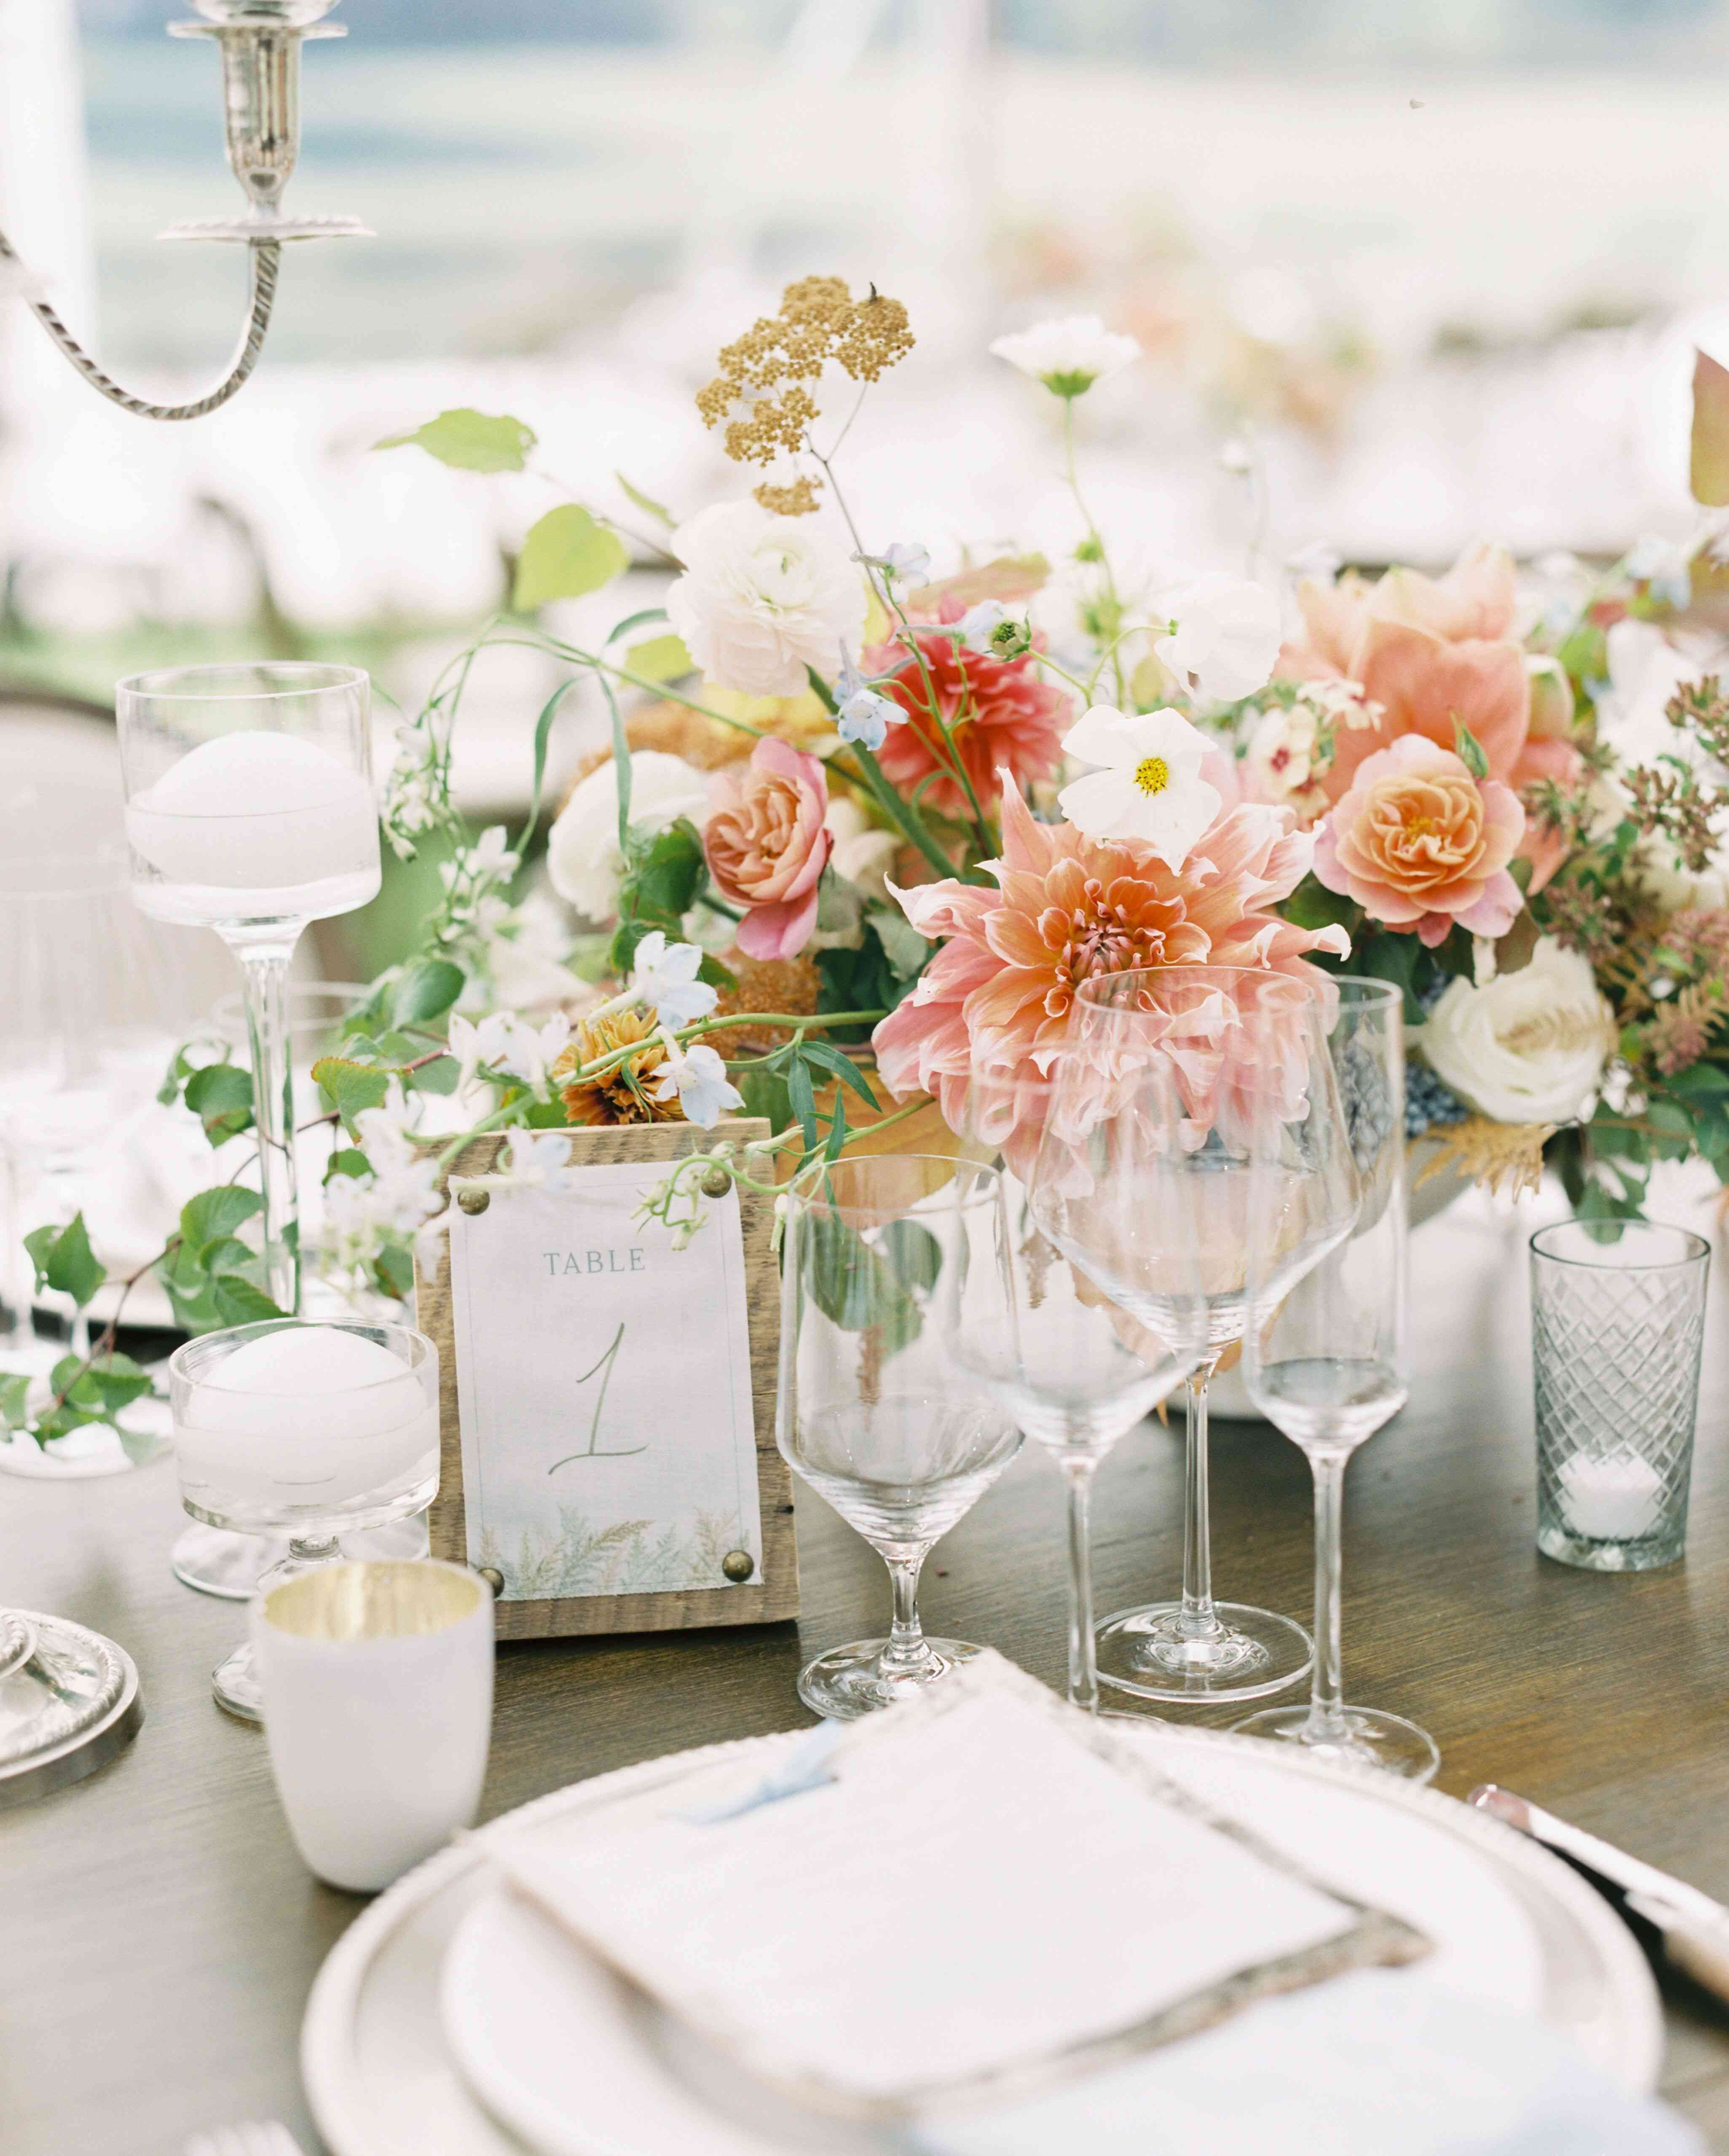 Table setting with tacked table numbers